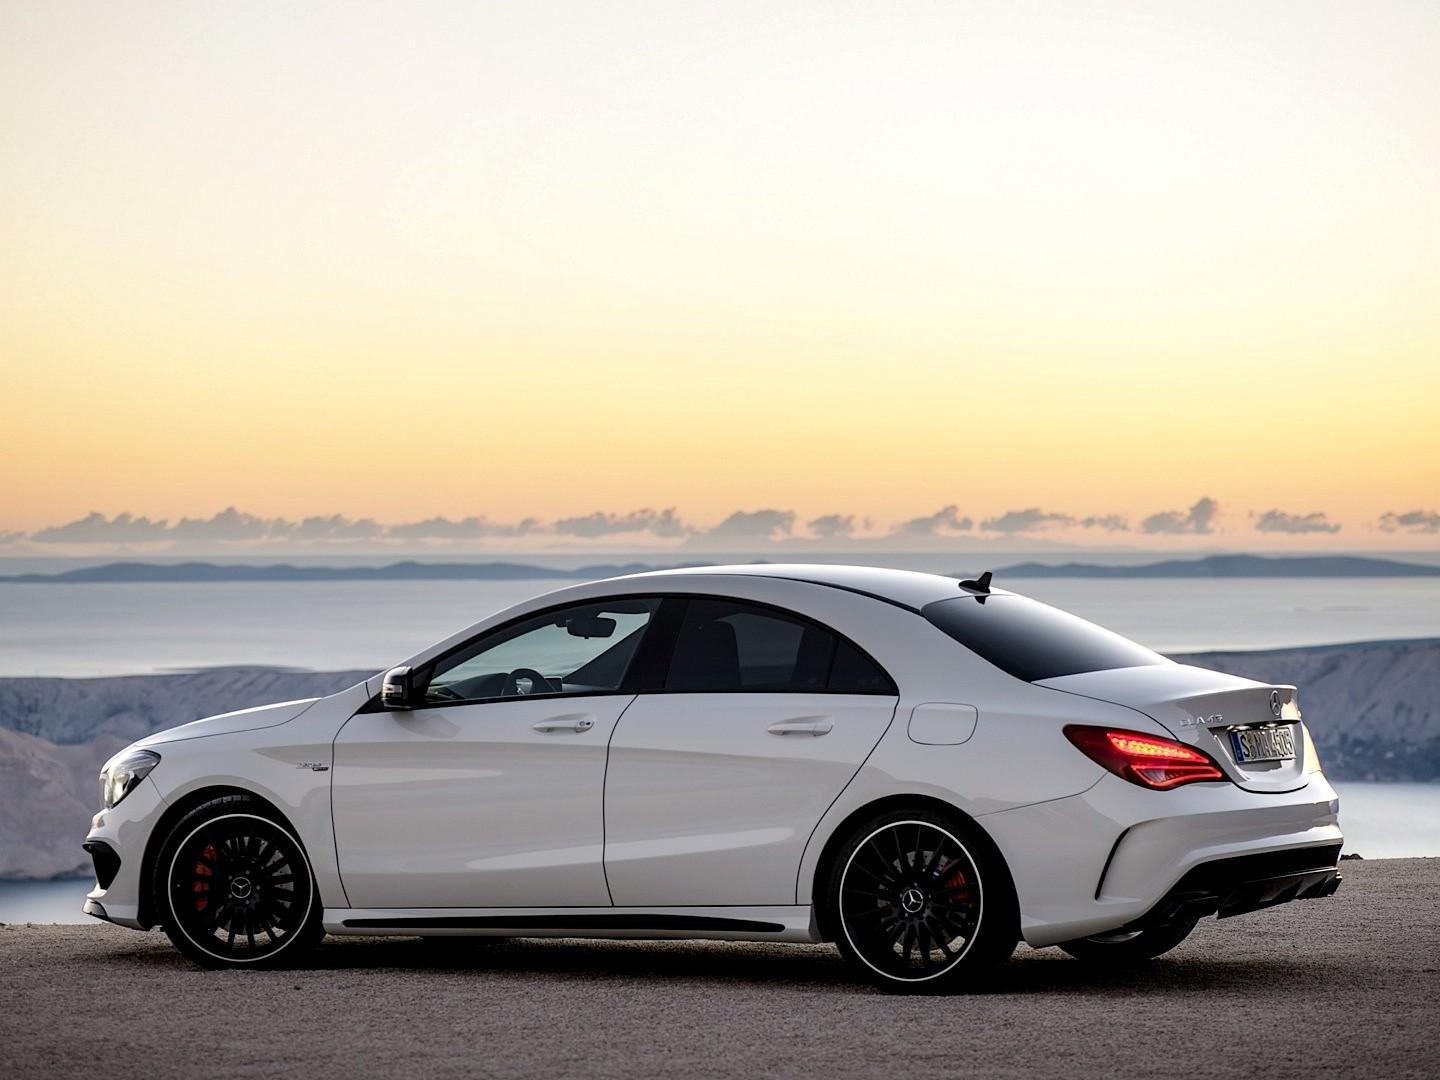 Mercedes benz cla 45 amg wallpaper hd download for Mercedes benz amg cla 45